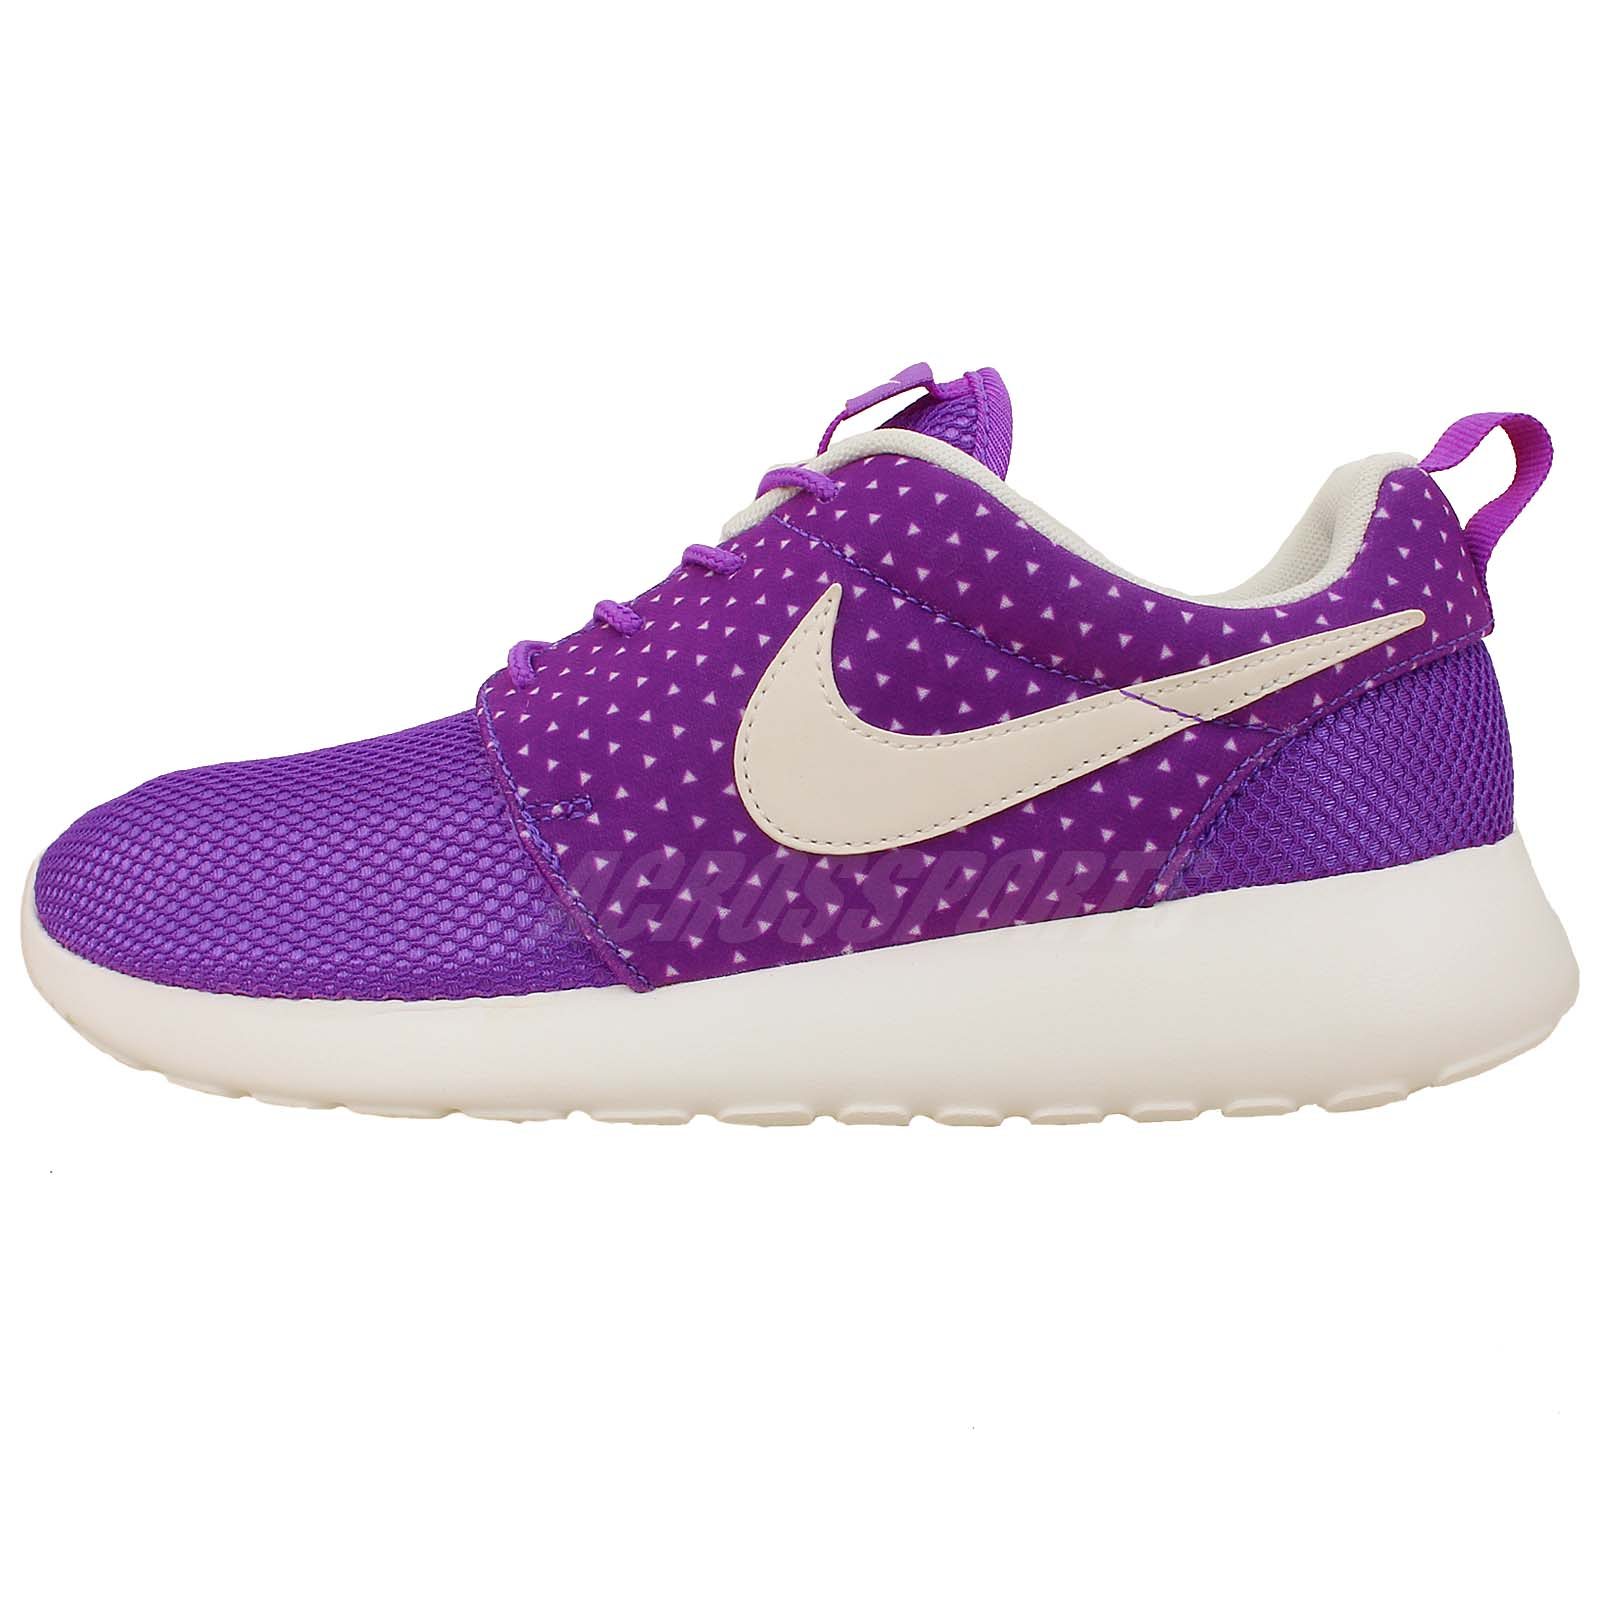 Wonderful Nike Shoes For Women Casual 2013 Trends For Nike Casual Sneakers For